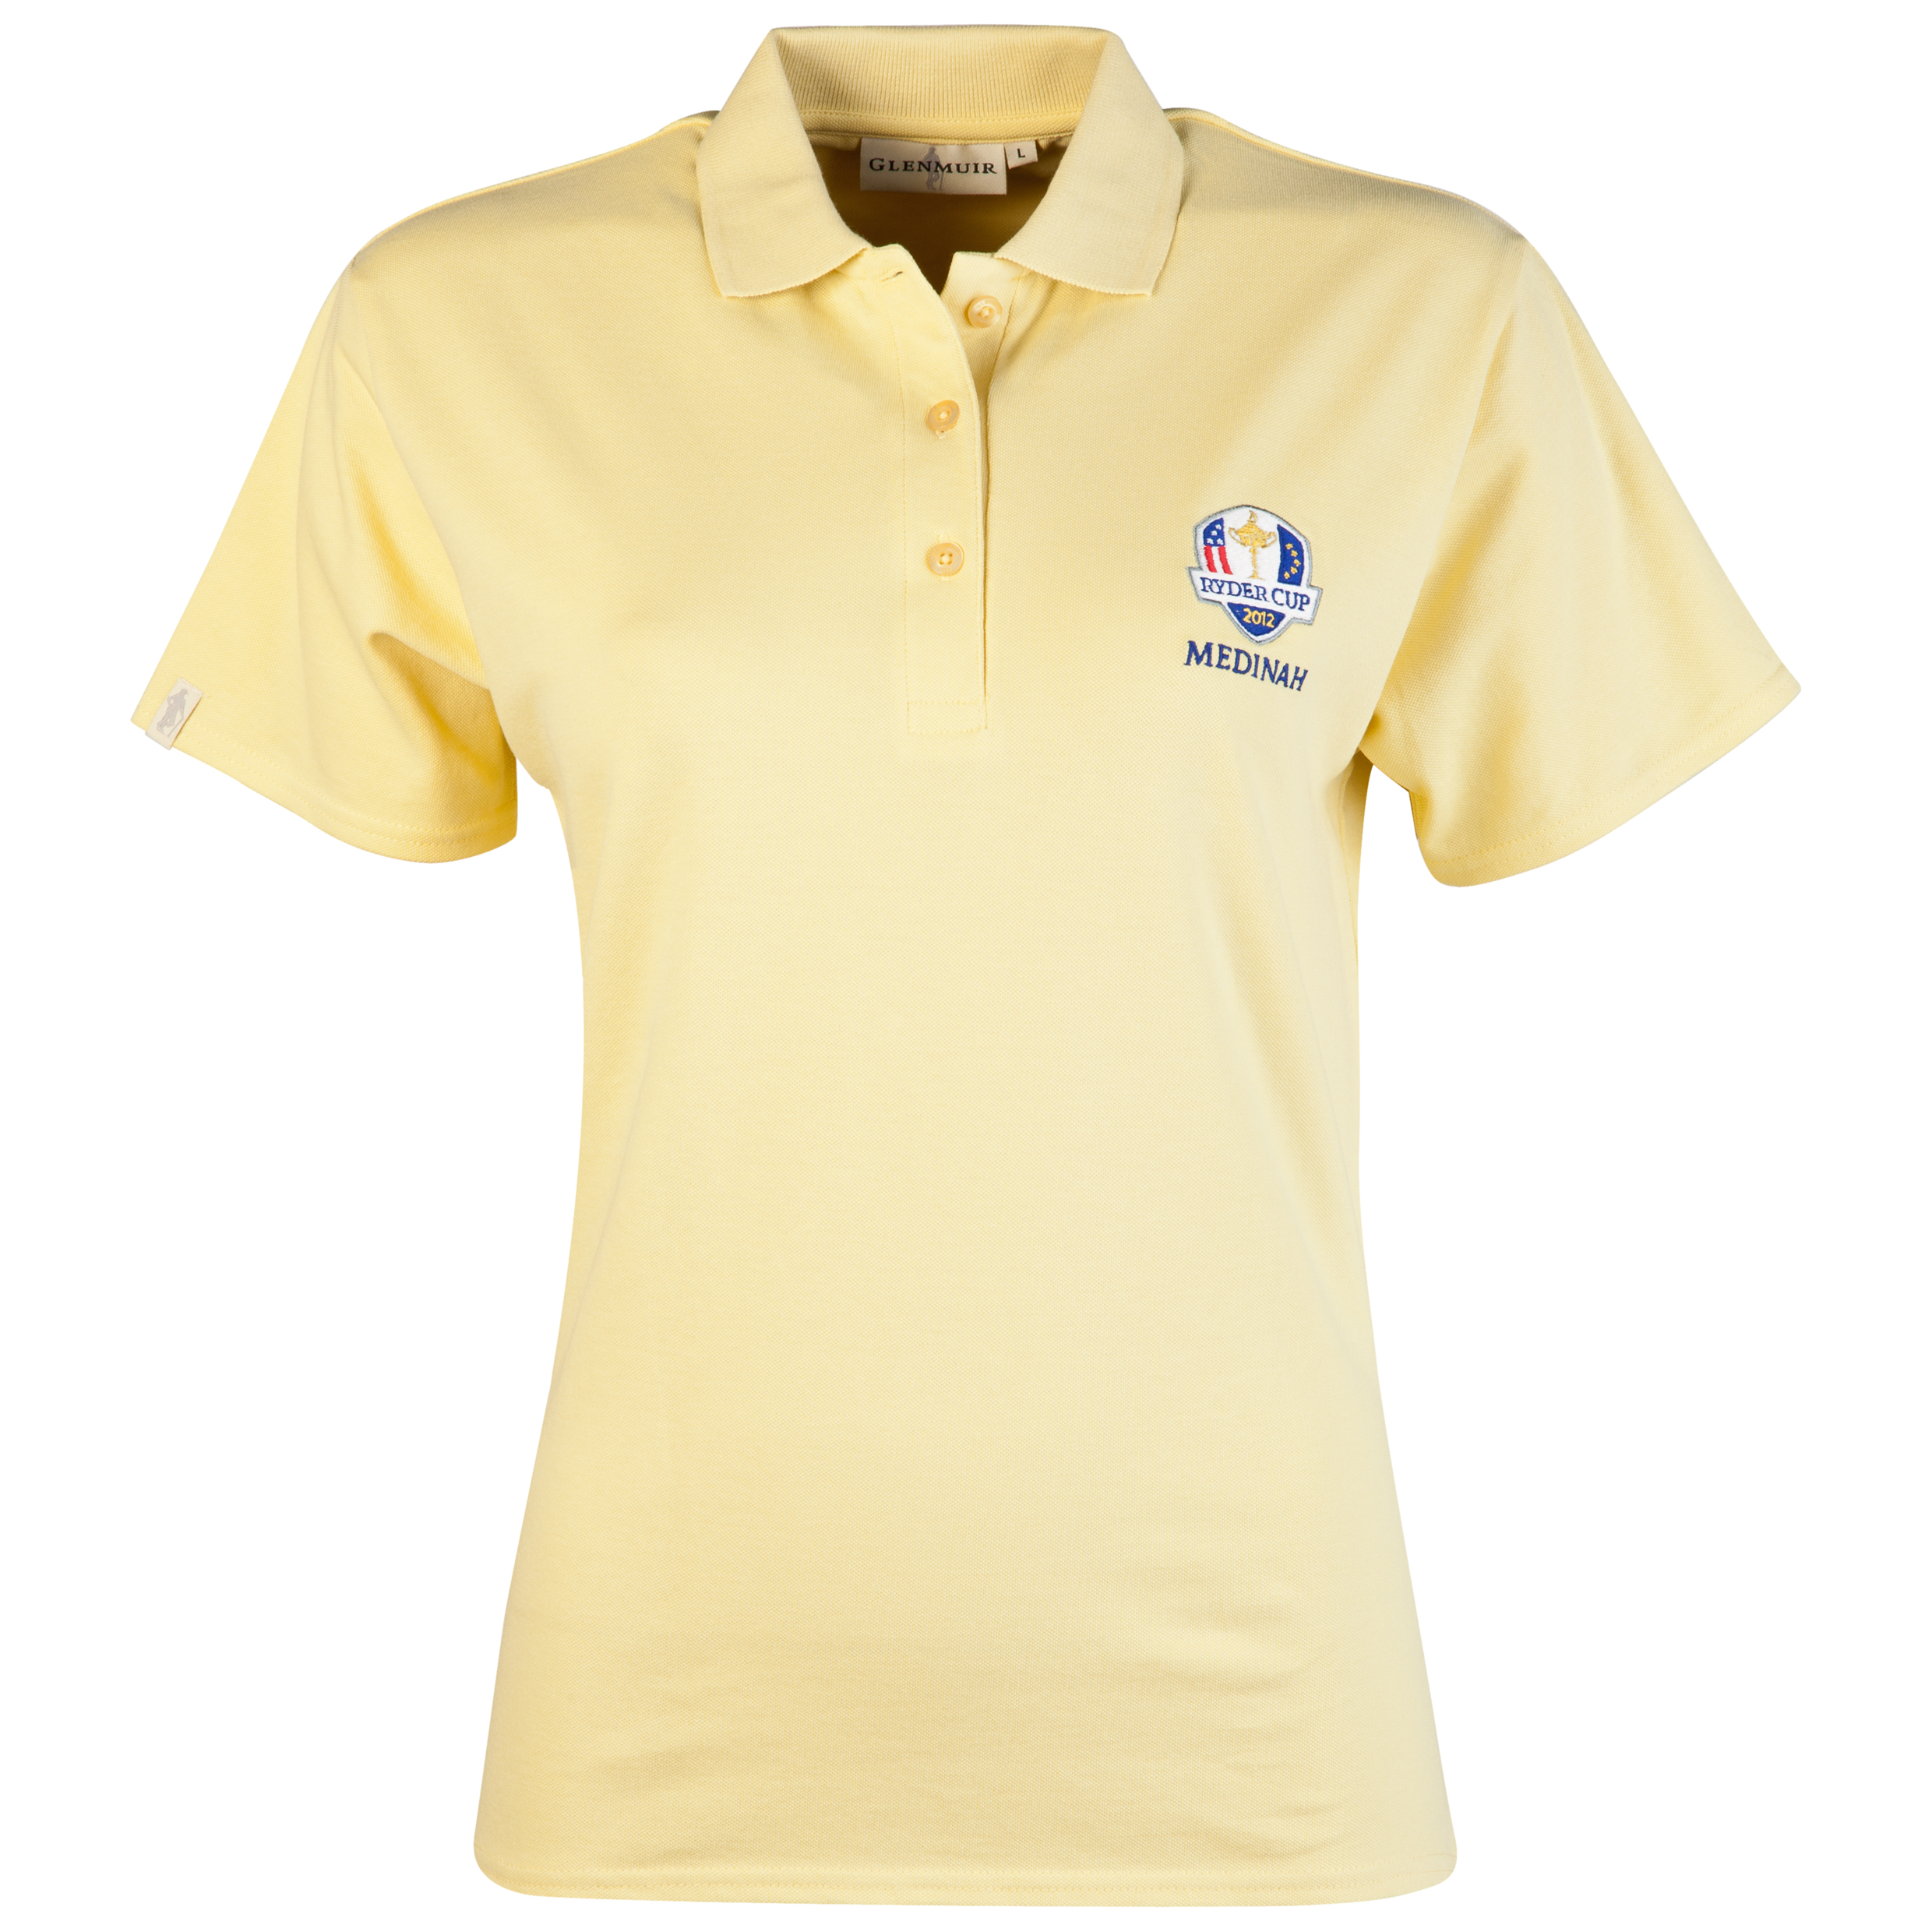 The 2012 Ryder Cup Glenmuir Sophie Womeninchs Polo - Light Yellow